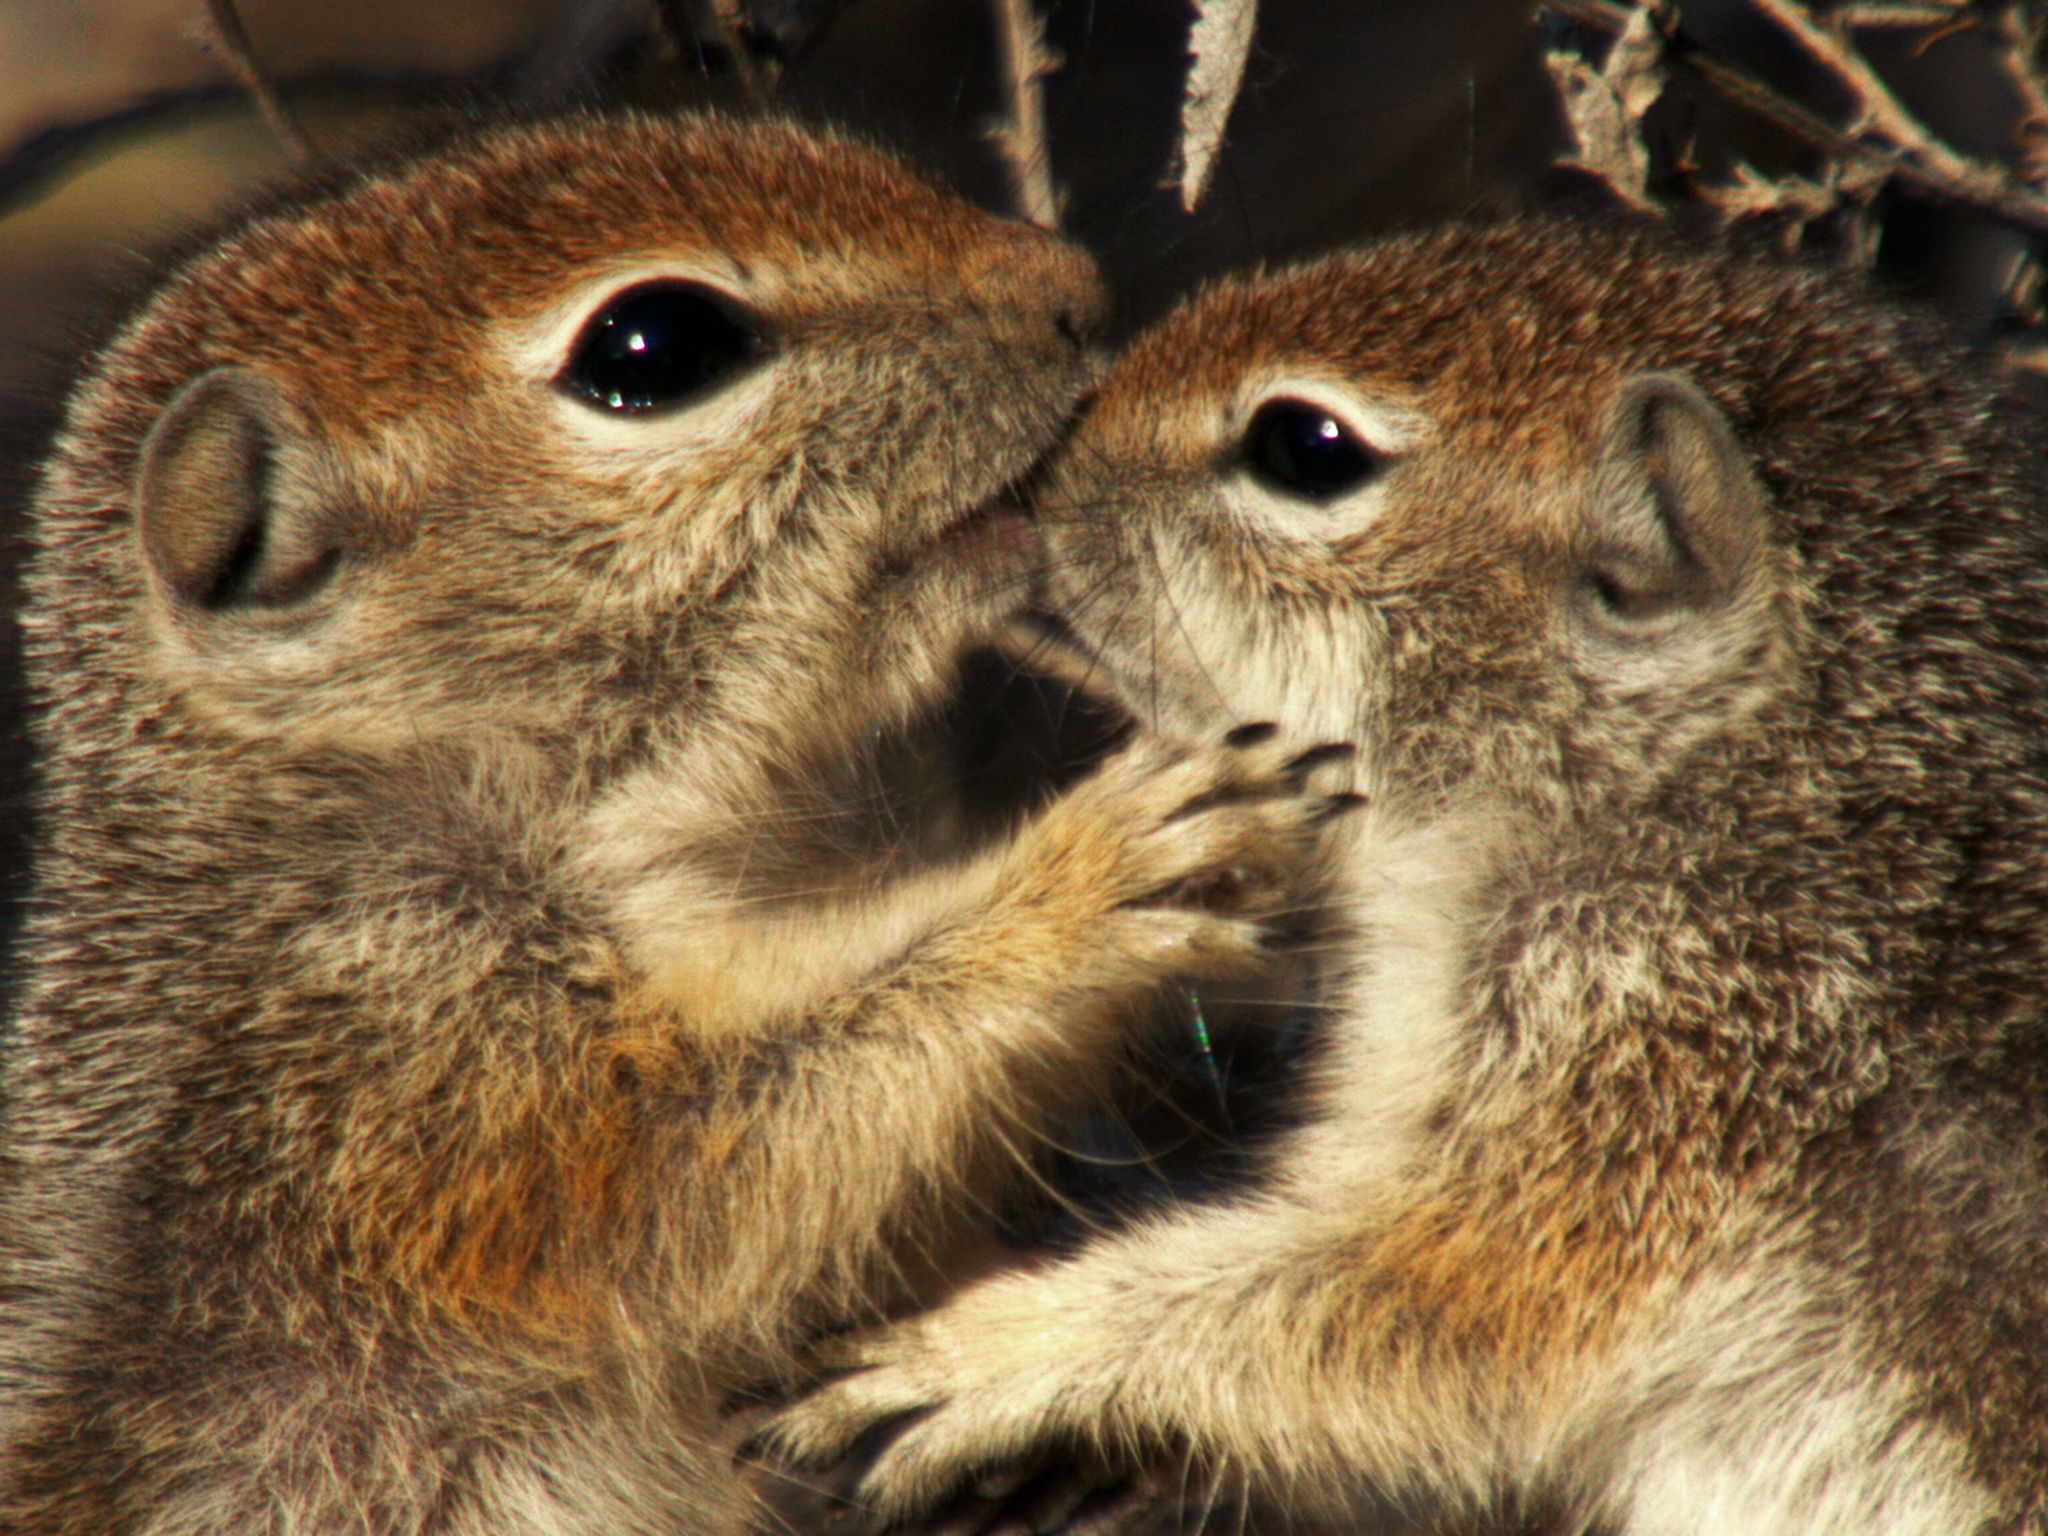 Saguaro National Park, Arizona: Young antelope squirrels play with each other. This image is... [Photo of the day - February 2016]